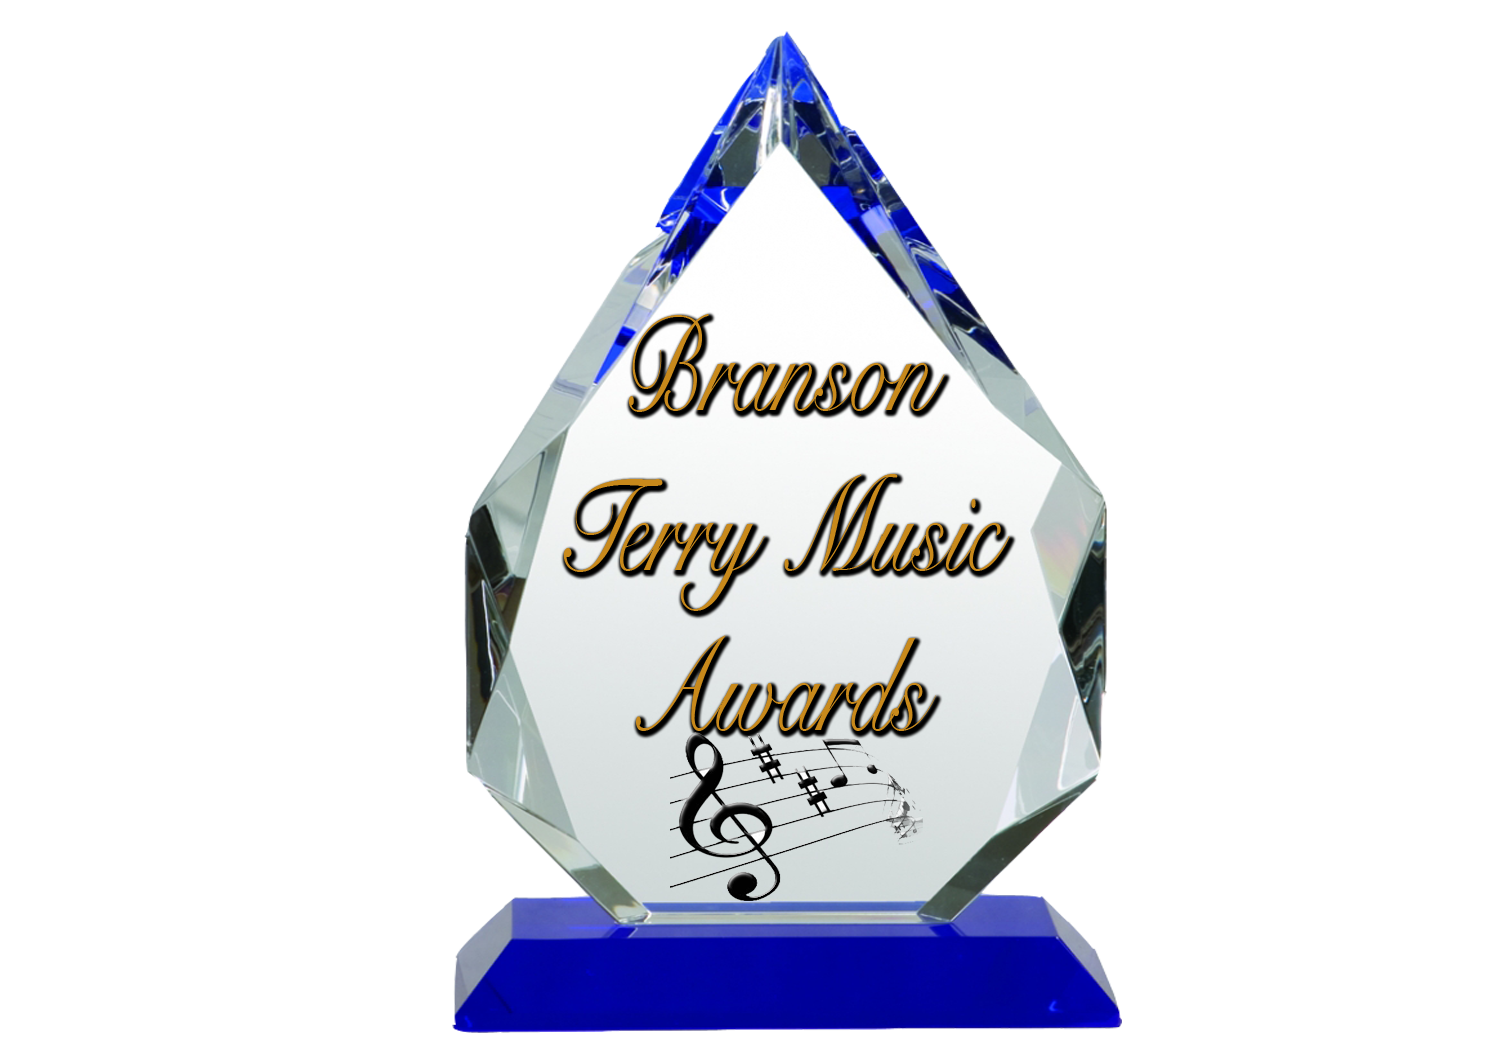 Branson Terry Music Awards